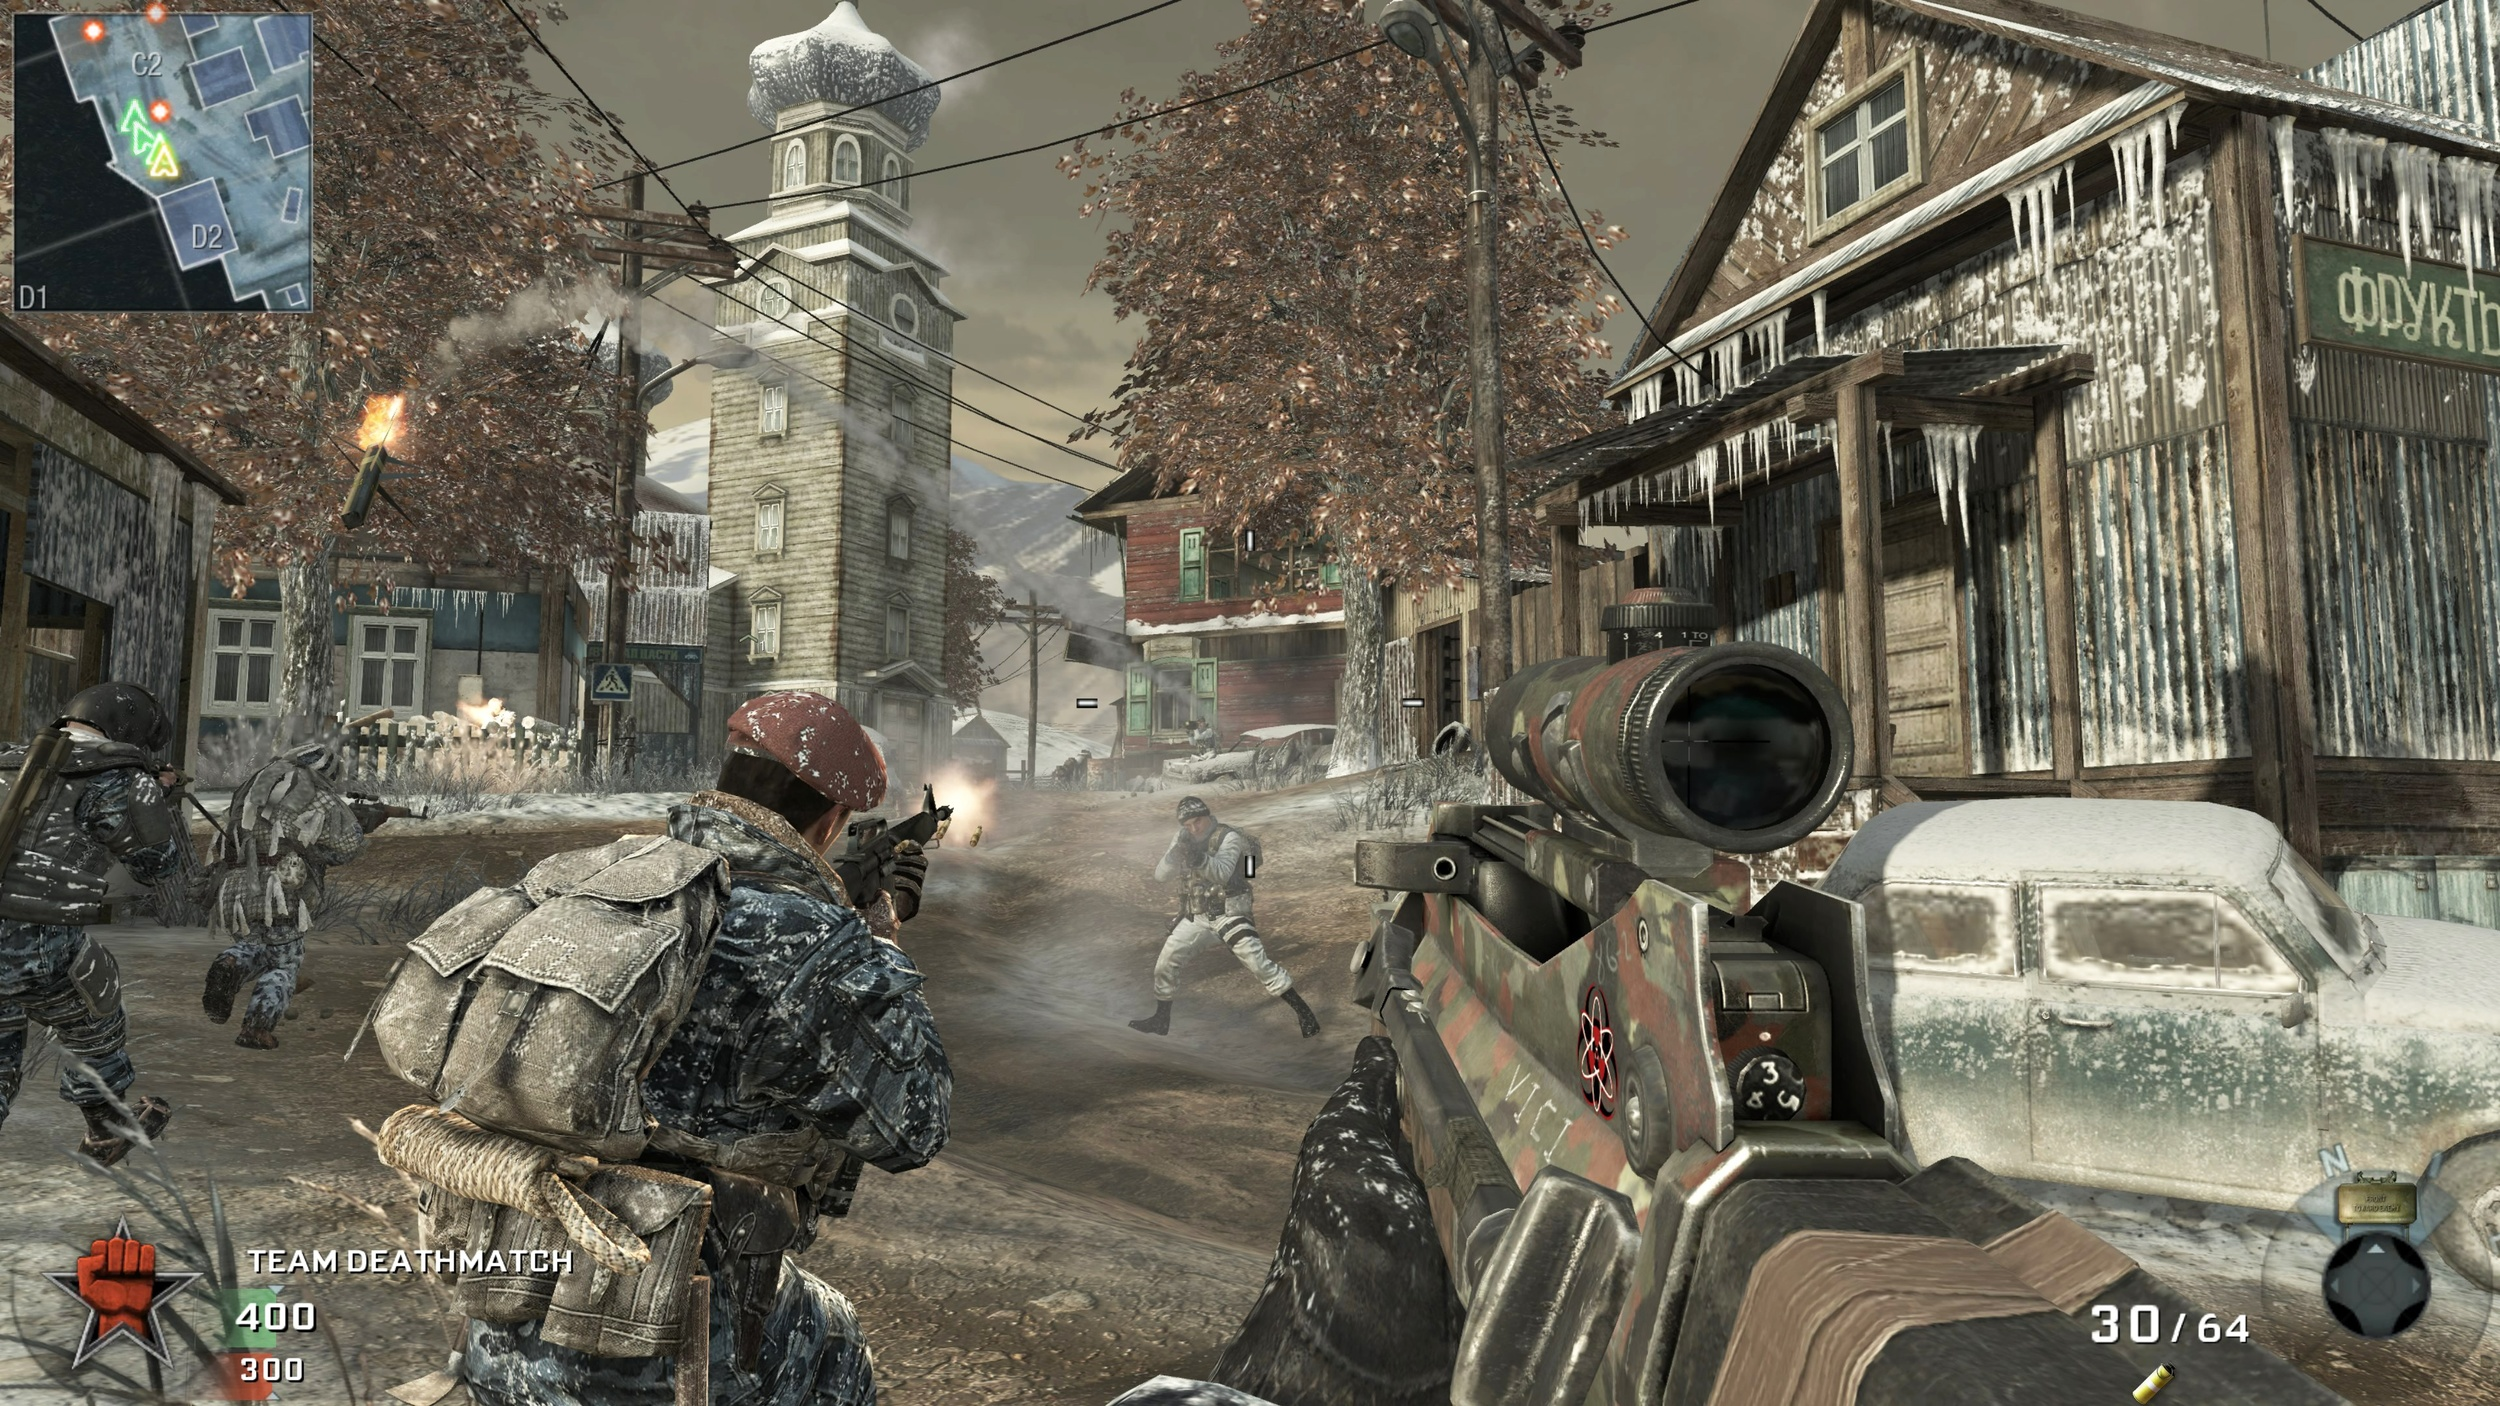 call-of-duty-black-ops-11-3840x2160.jpg